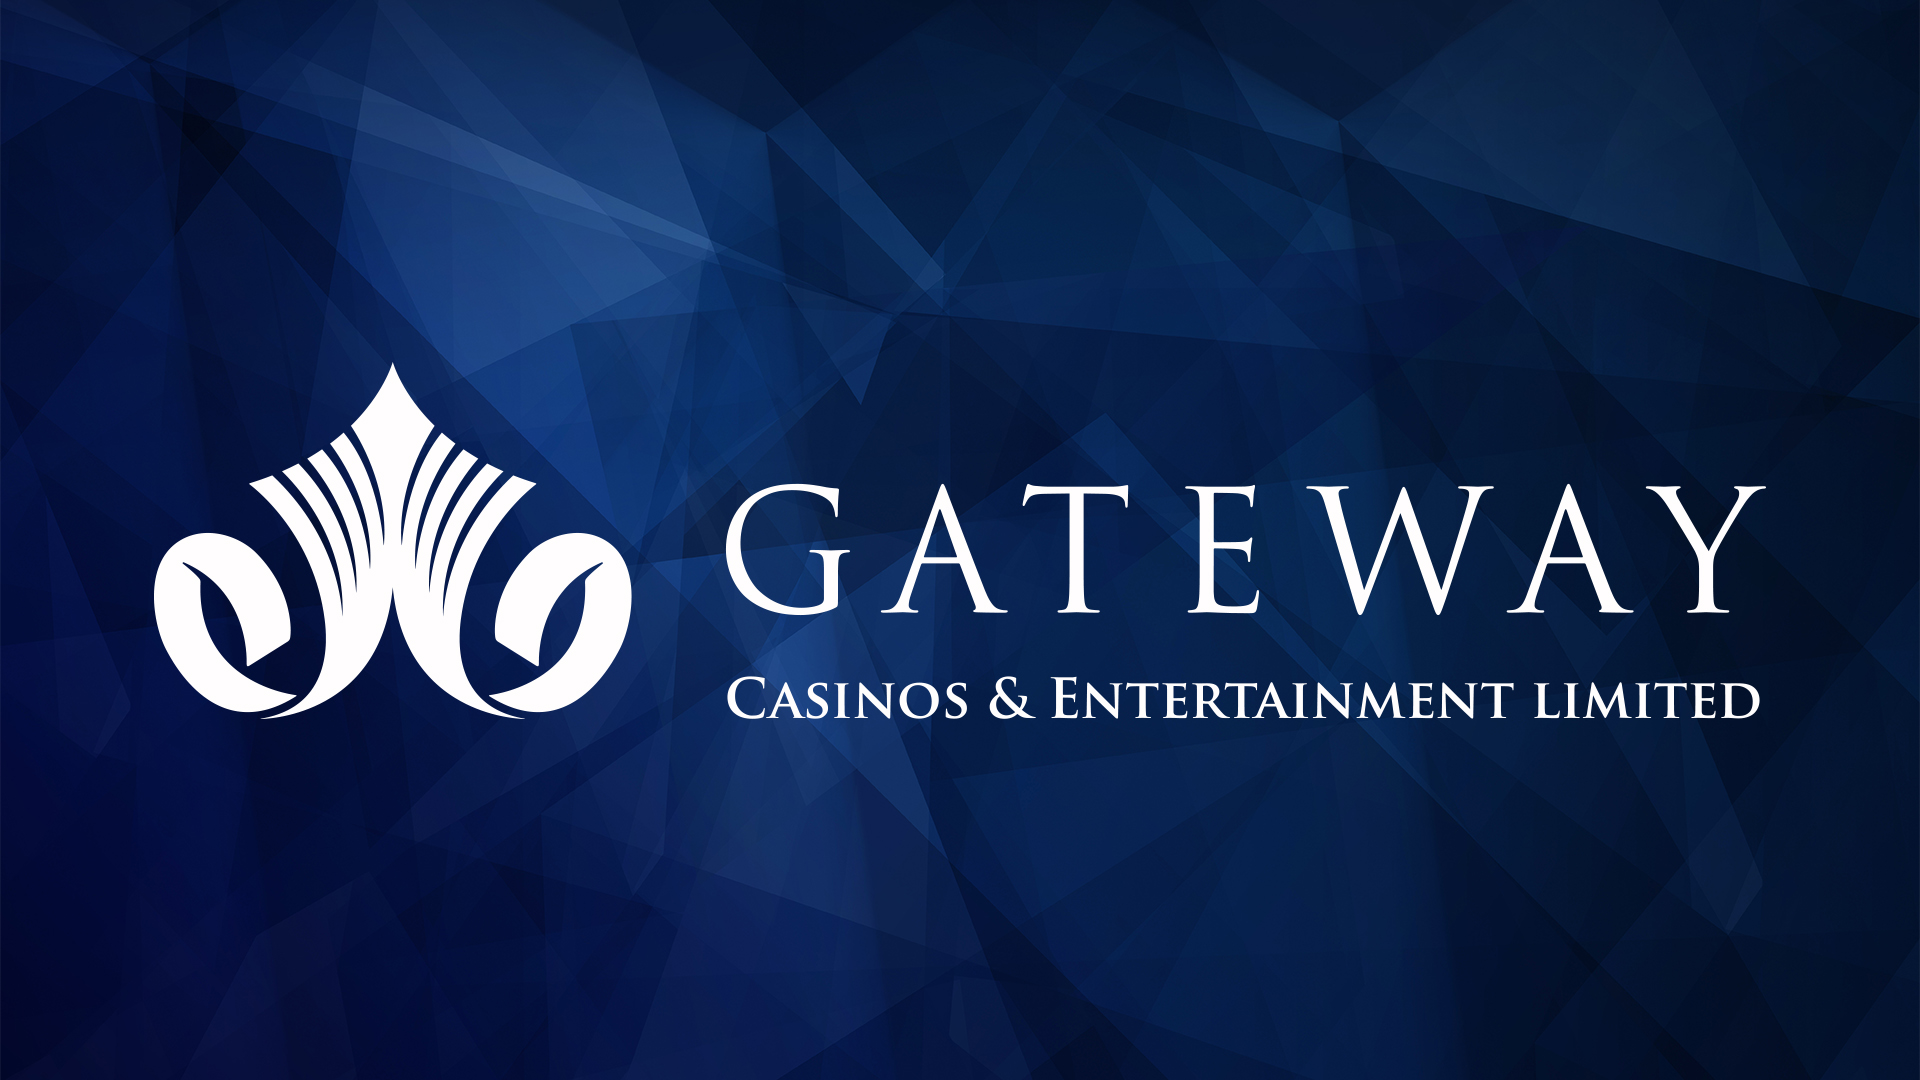 Gateway Casinos Announces Successful Refinancing